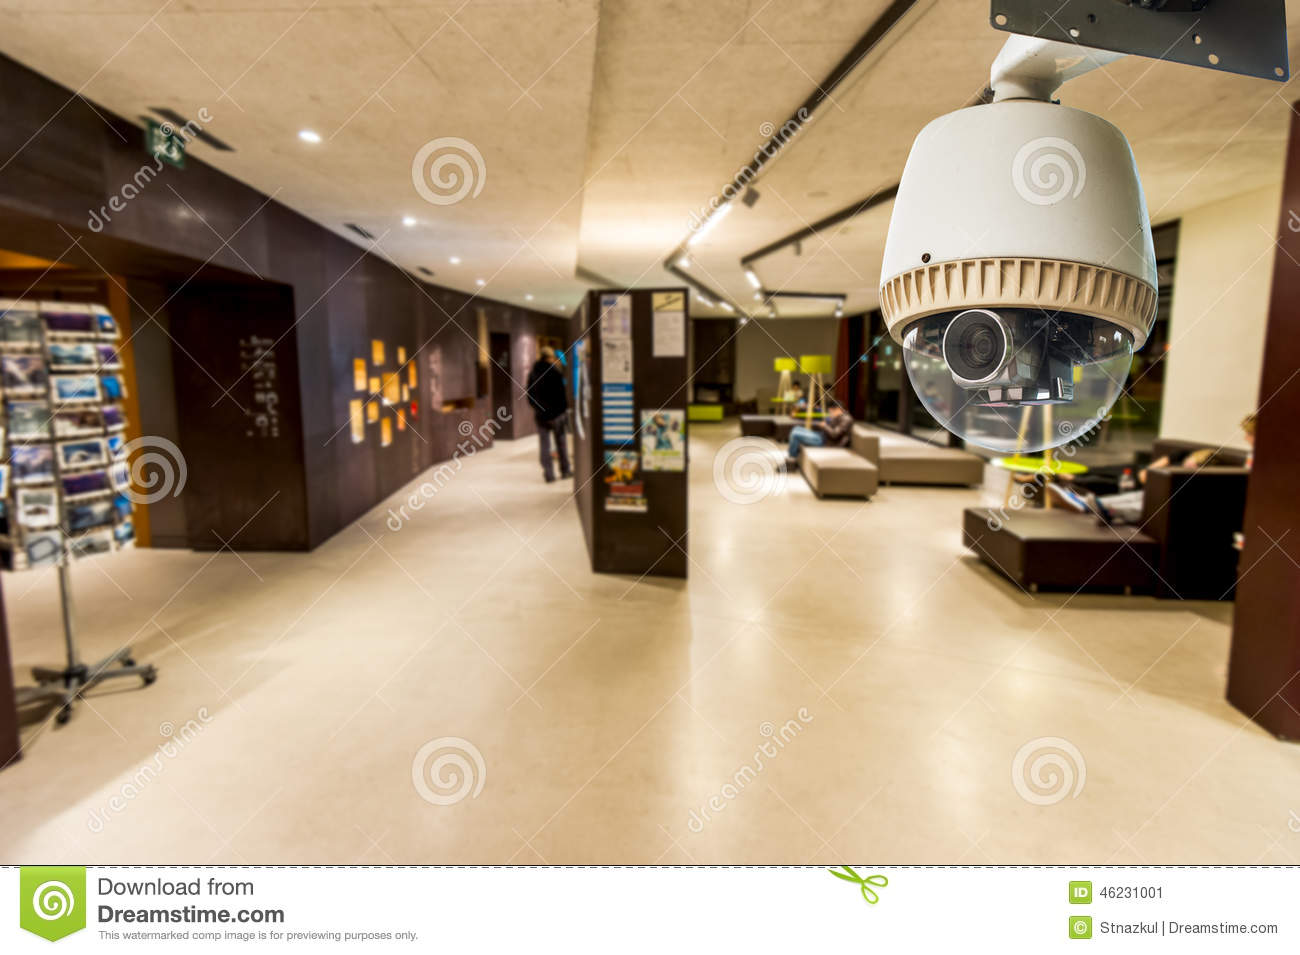 CCTV Camera Operating on living area or lobby